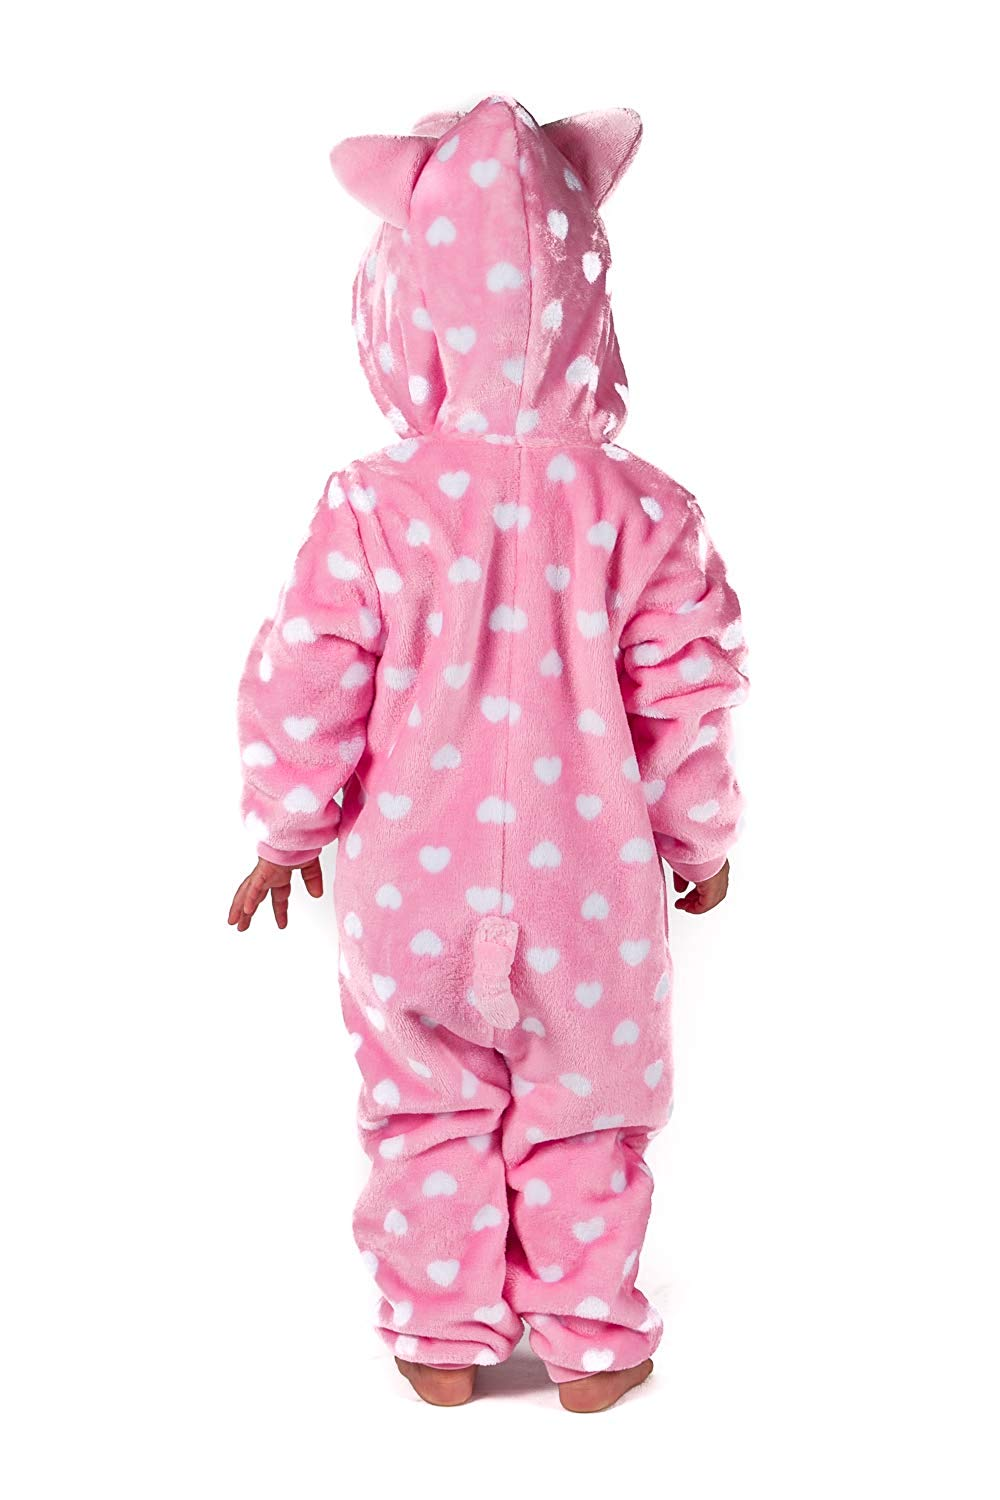 Jammers Baby Infant Toddler Onesie Animal Costume - Pig